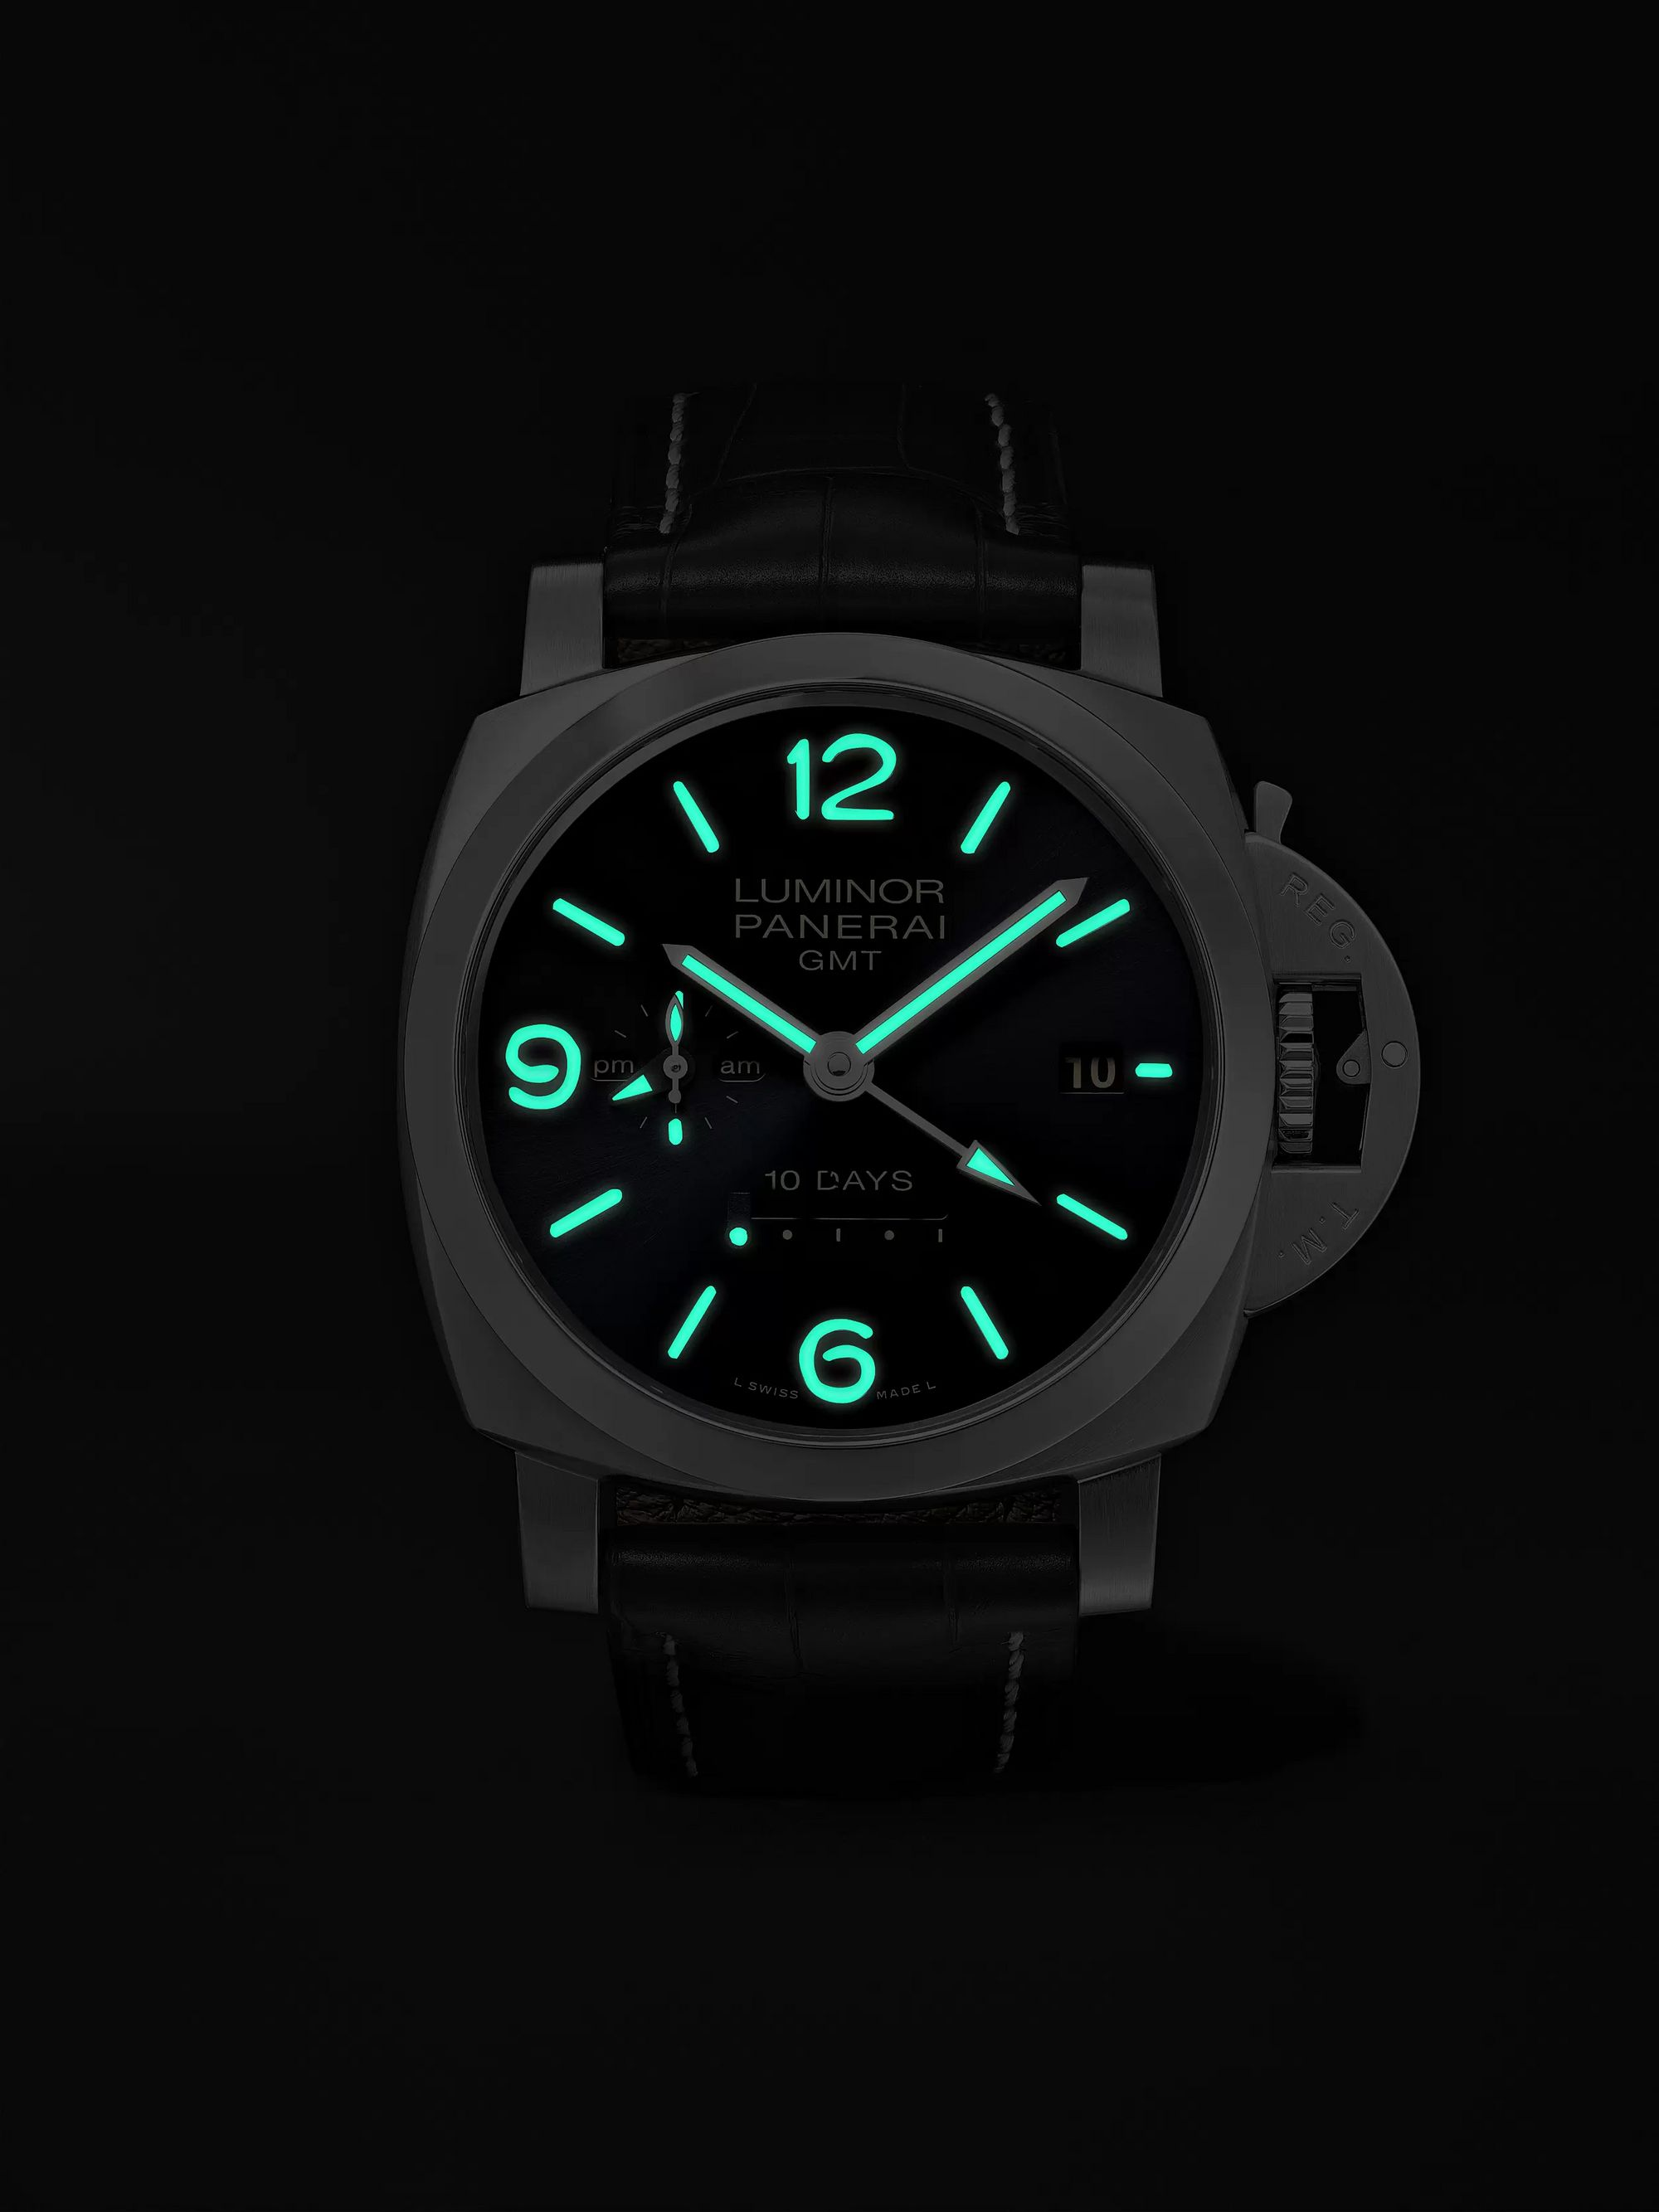 Panerai Luminor 1950 10 Days GMT Automatic 44mm Stainless Steel and Alligator Watch, Ref. No. PNPAM00986